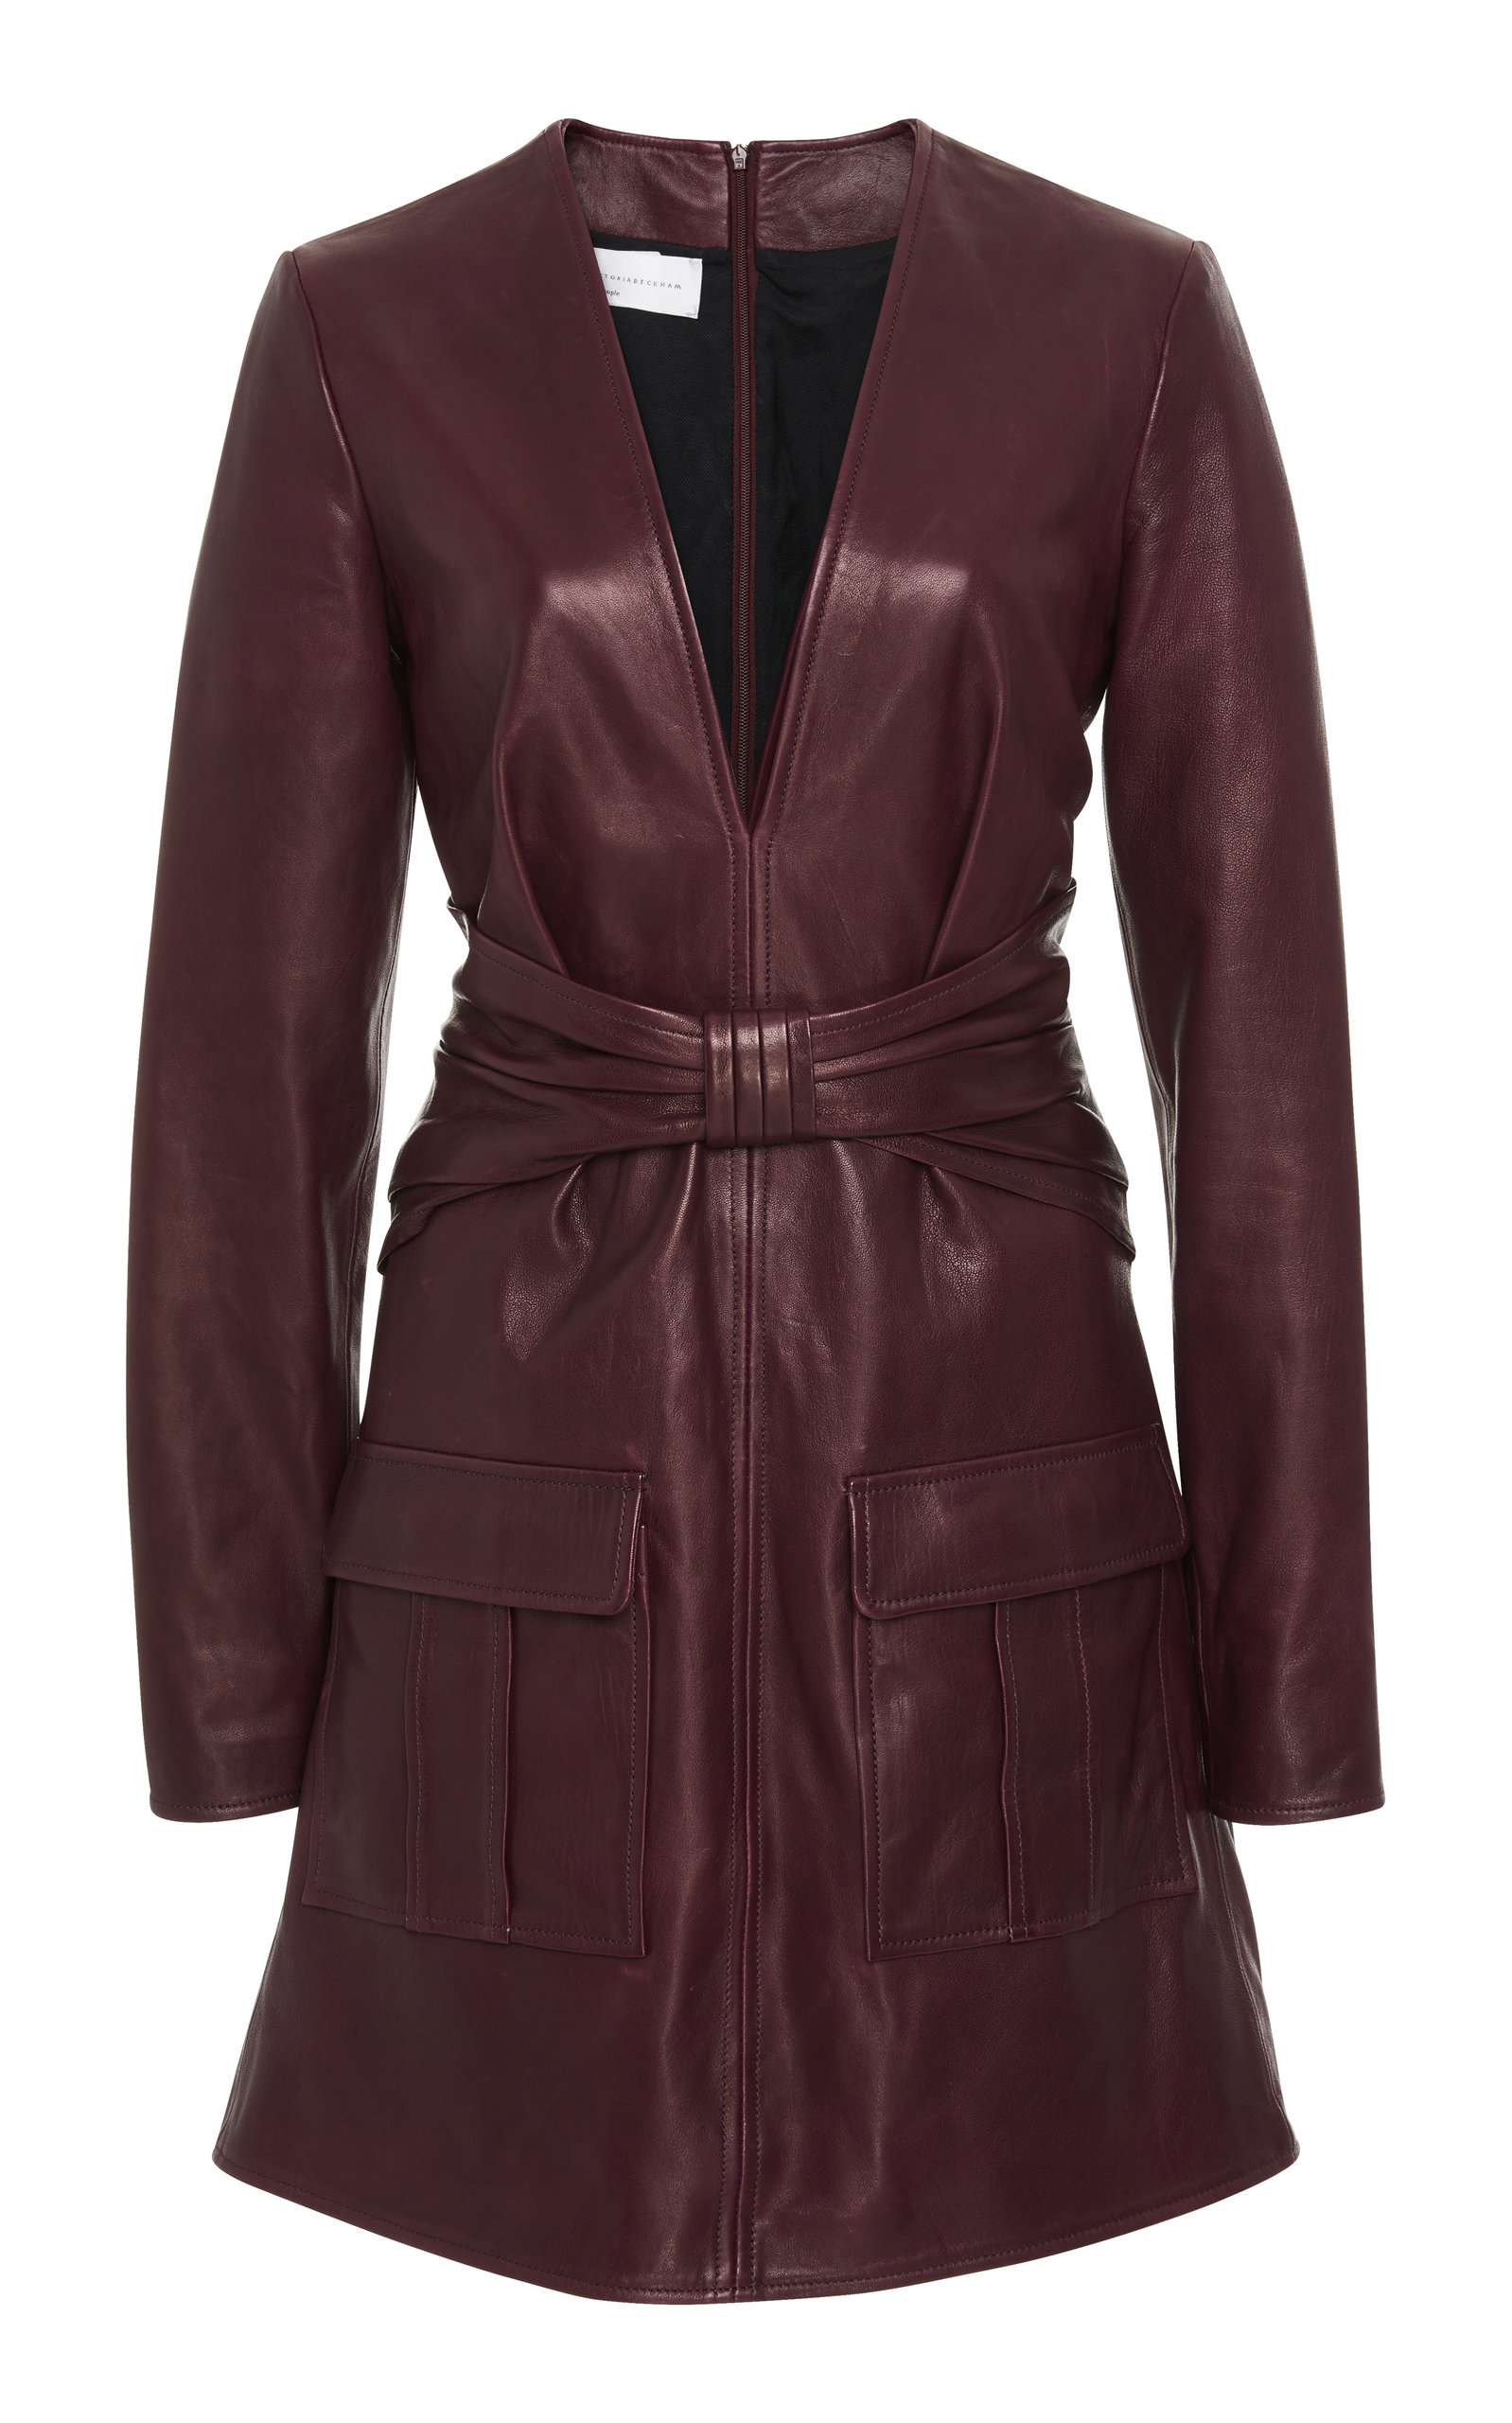 Sale Outlet Bow-Detailed Leather Mini Dress Victoria Beckham Cheap Sale Official Site Clearance Wide Range Of 1yay1sHrGb